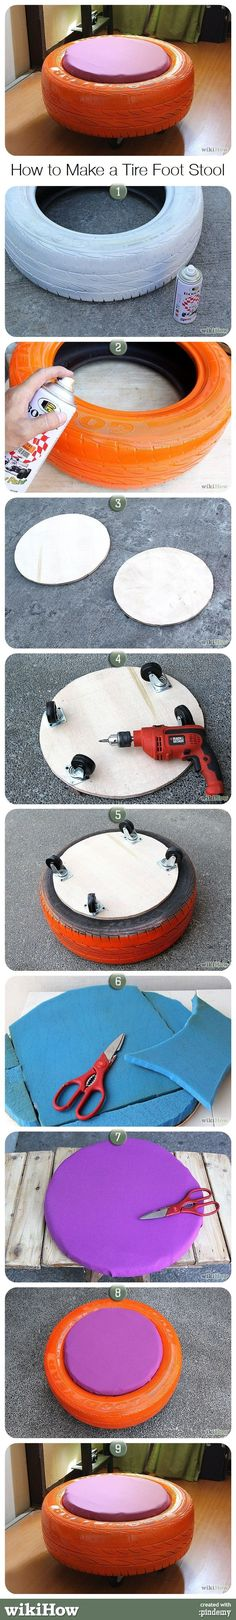 How to Make a Tire Foot Stool this would be great for out side or in the garage!